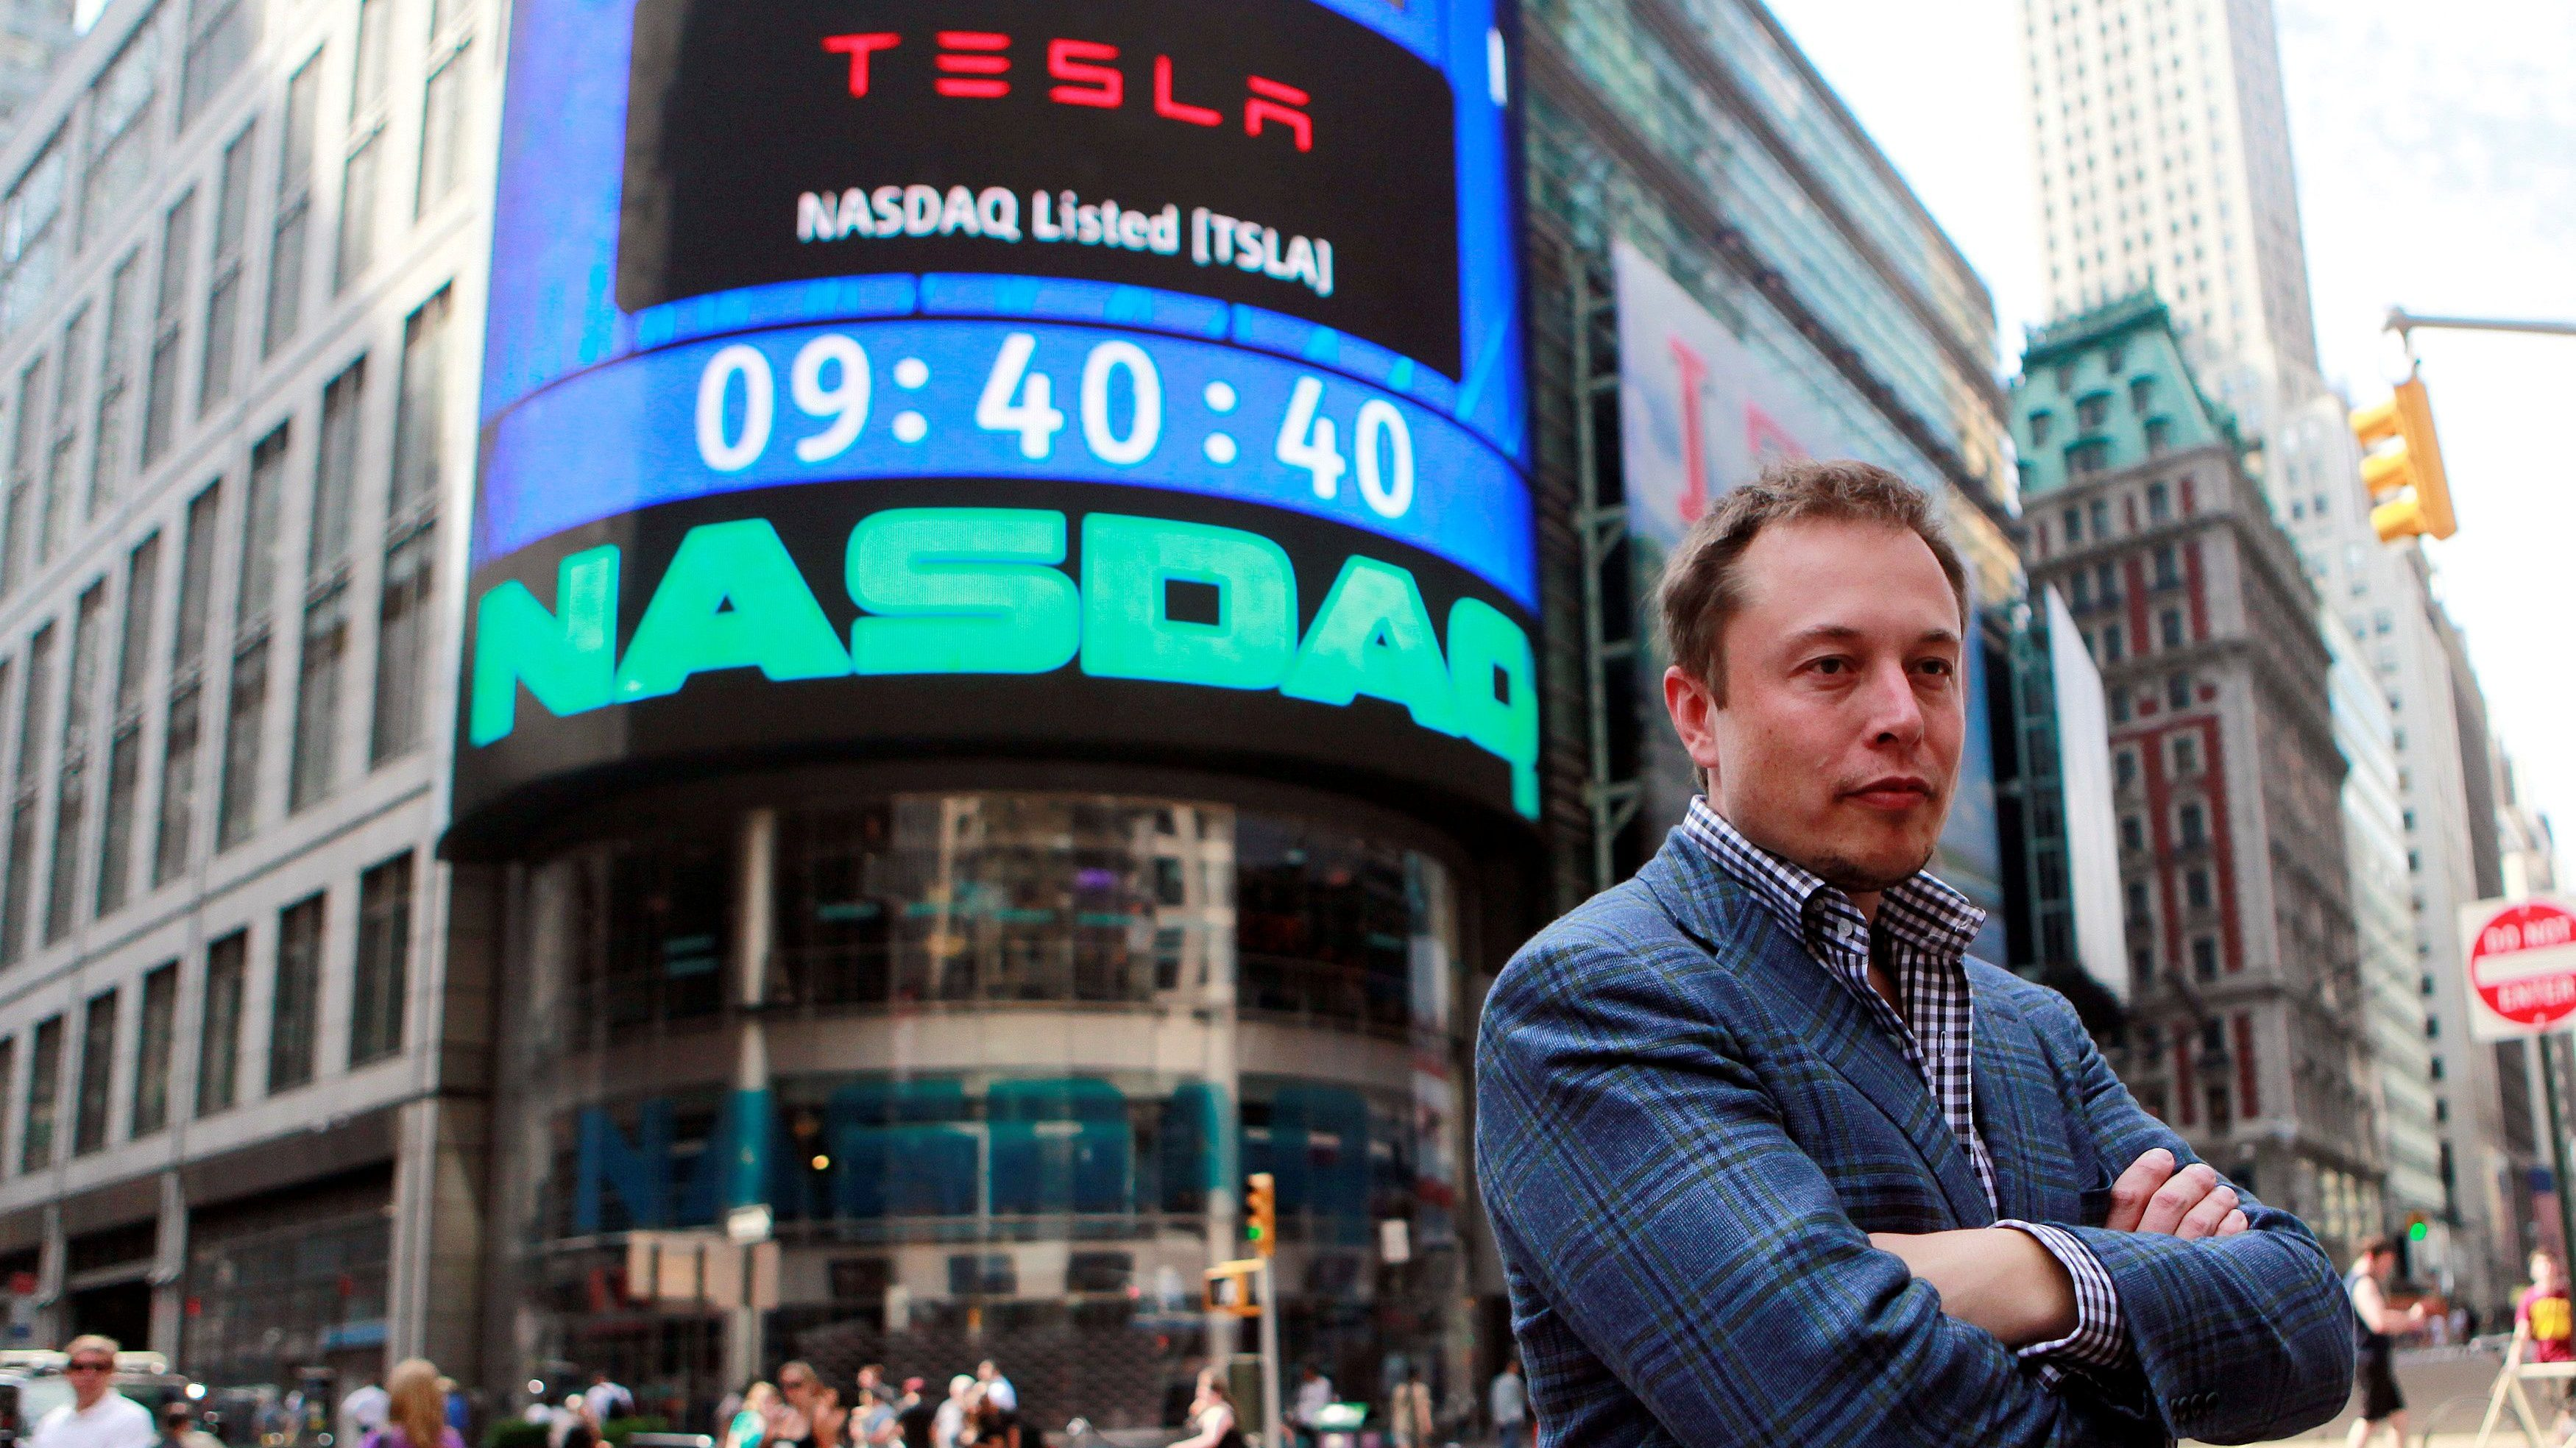 Elon Musk stands with his arms crossed in front of a New York City building with a sign announcing Tesla's listing on the Nasdaq.